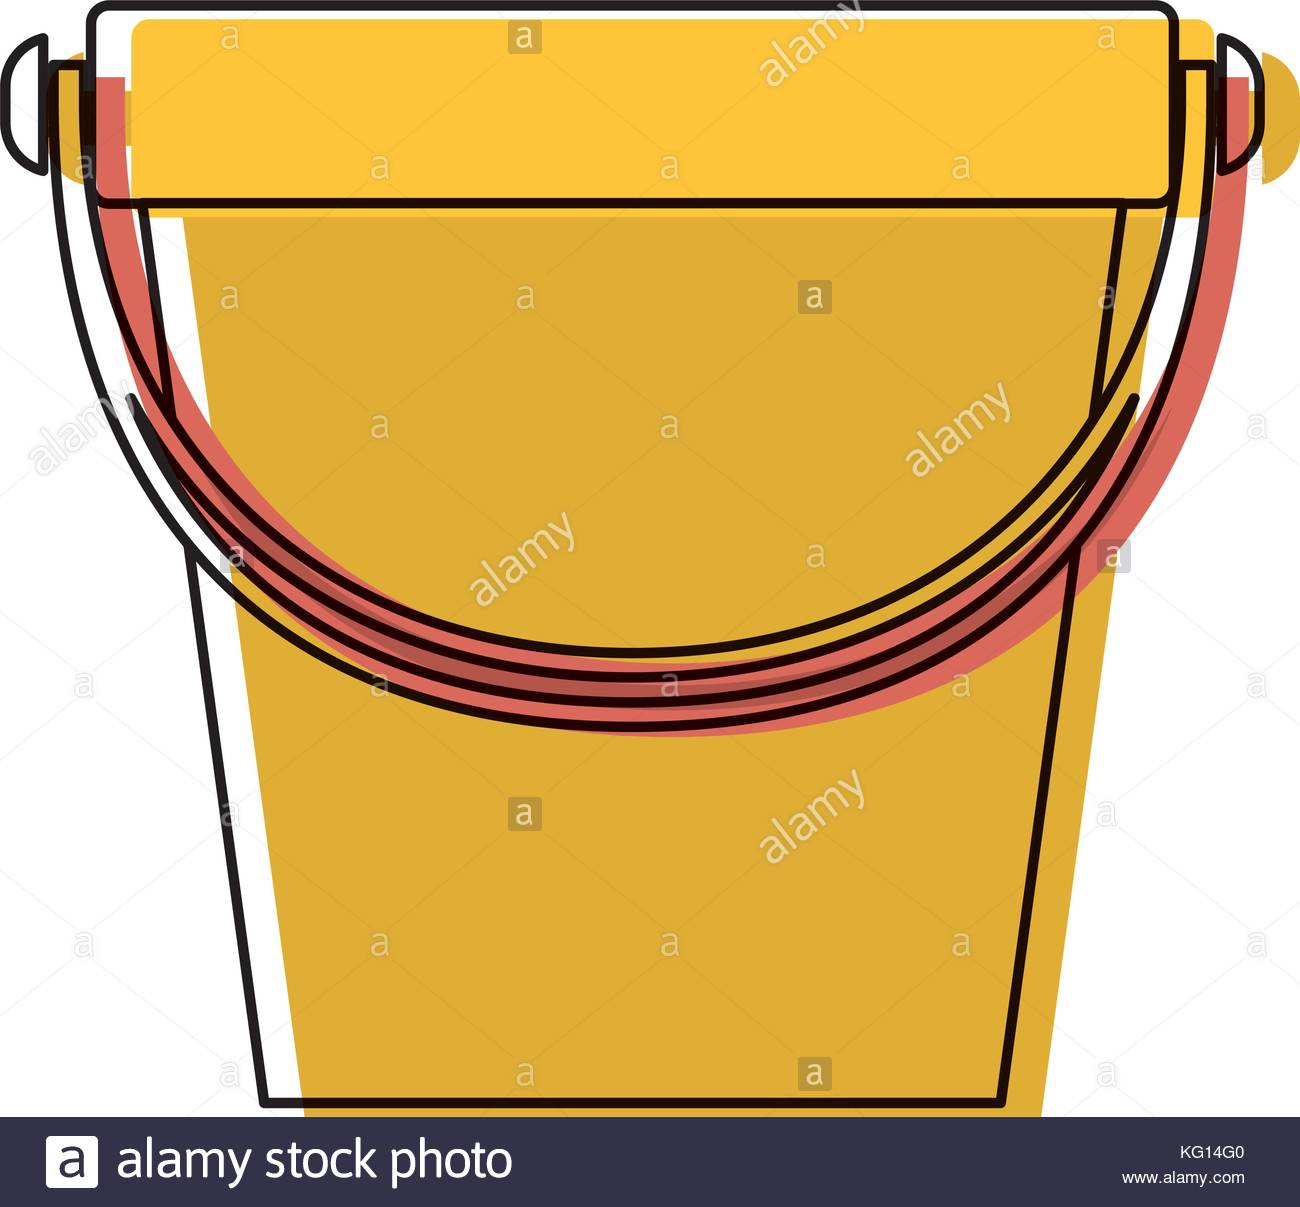 1300x1207 Bucket With Handle In Colorful Watercolor Silhouette Stock Vector